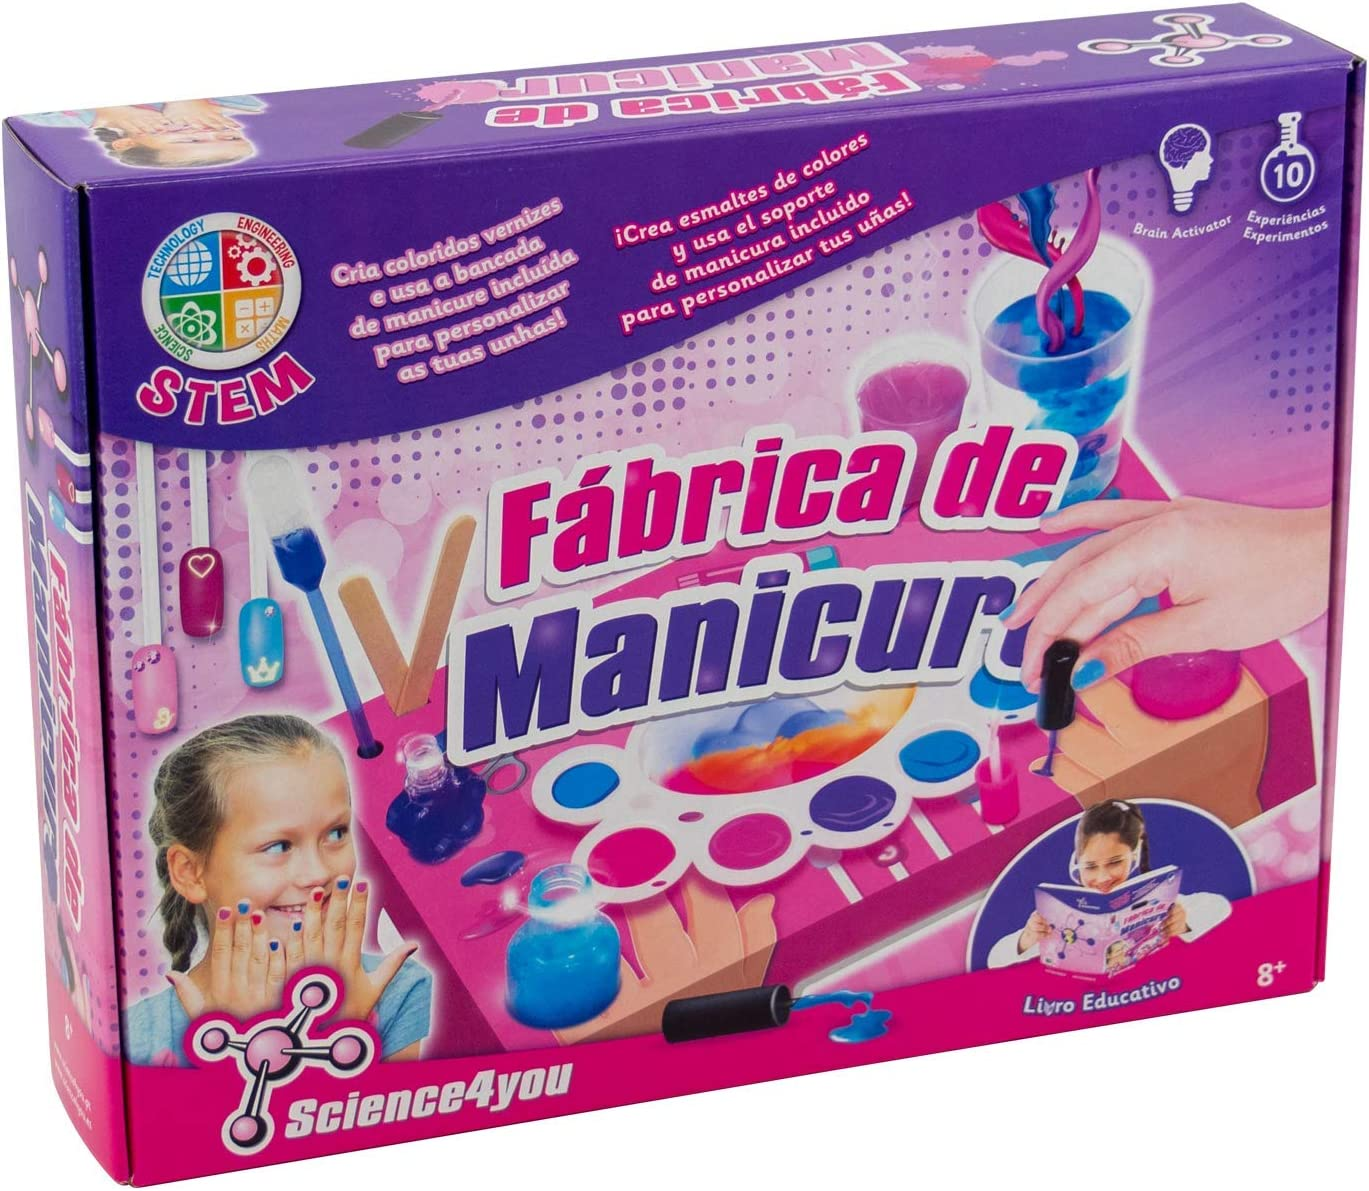 Science4you, Fábrica de Manicura - Juguete Científico y Educativo